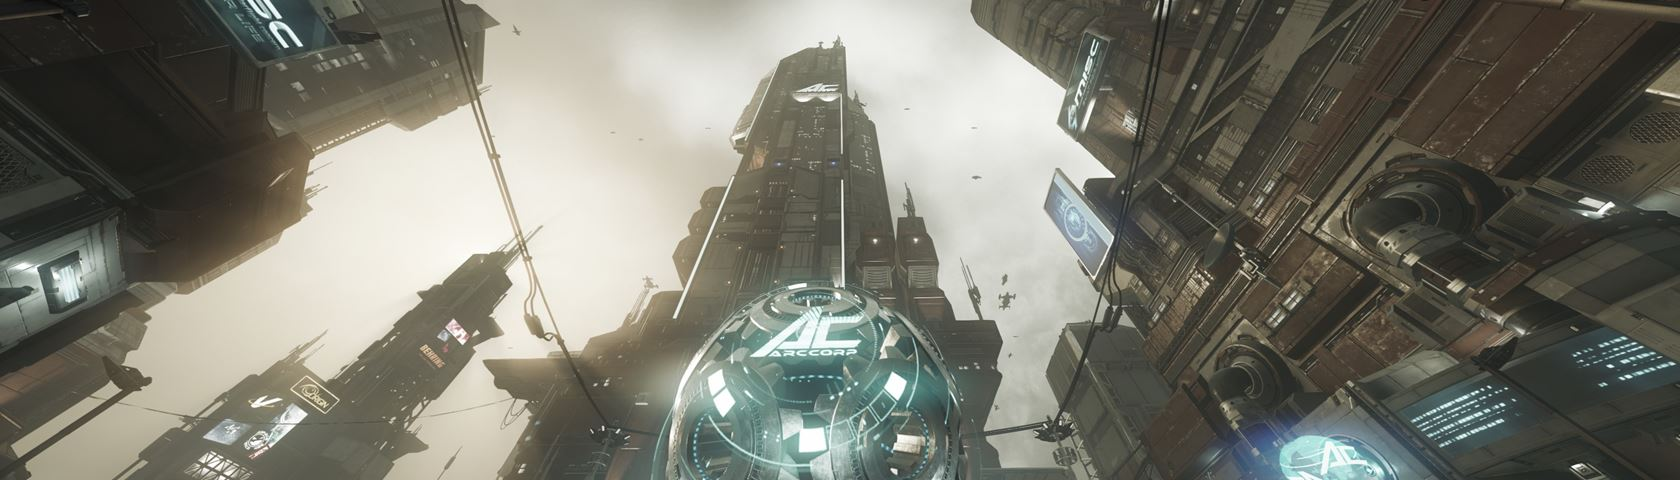 Star Citizen Eyefinity Open World 2